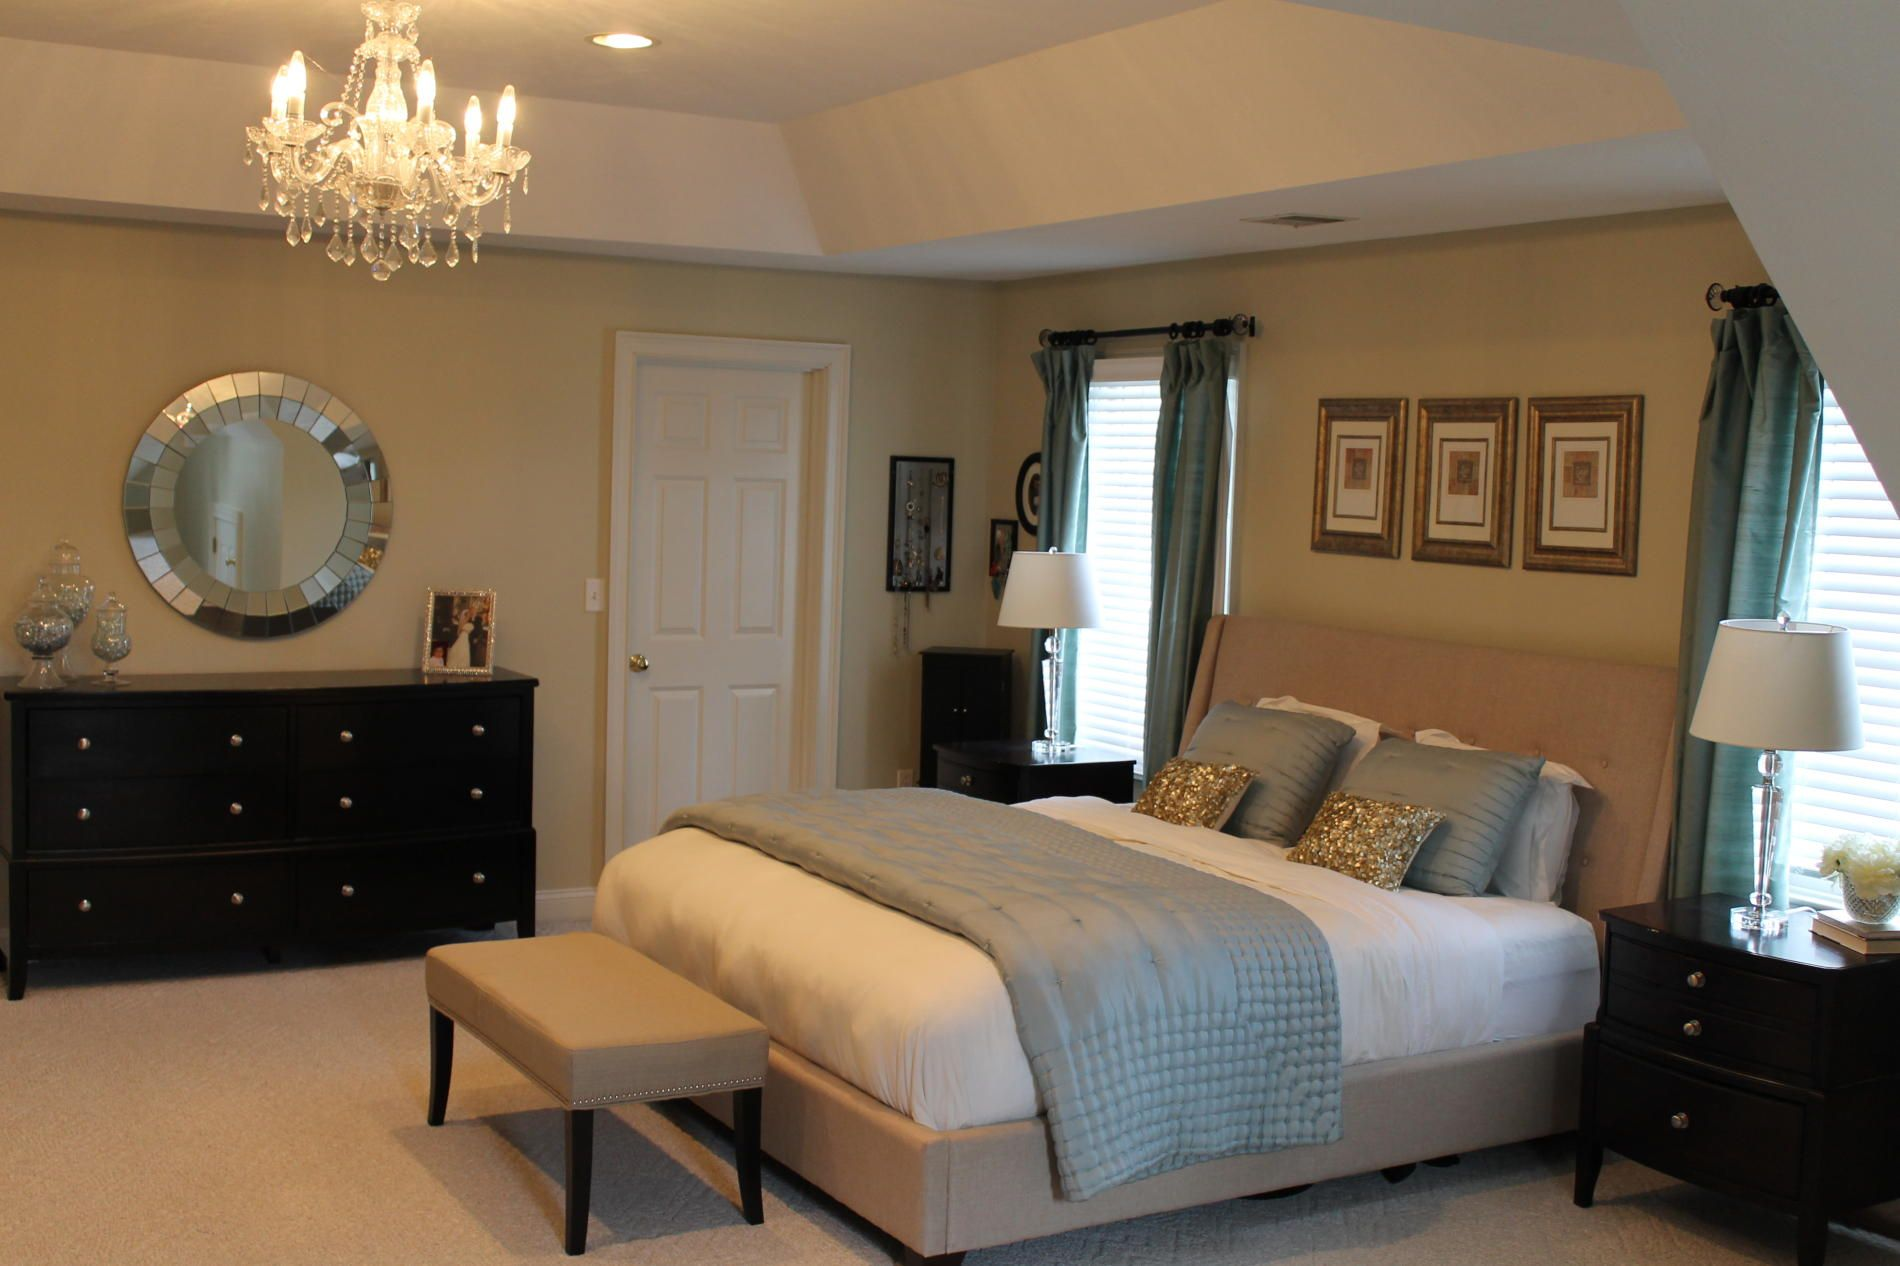 Best Pin By Jgm Design On Beautiful Bedrooms Bedroom Design 400 x 300